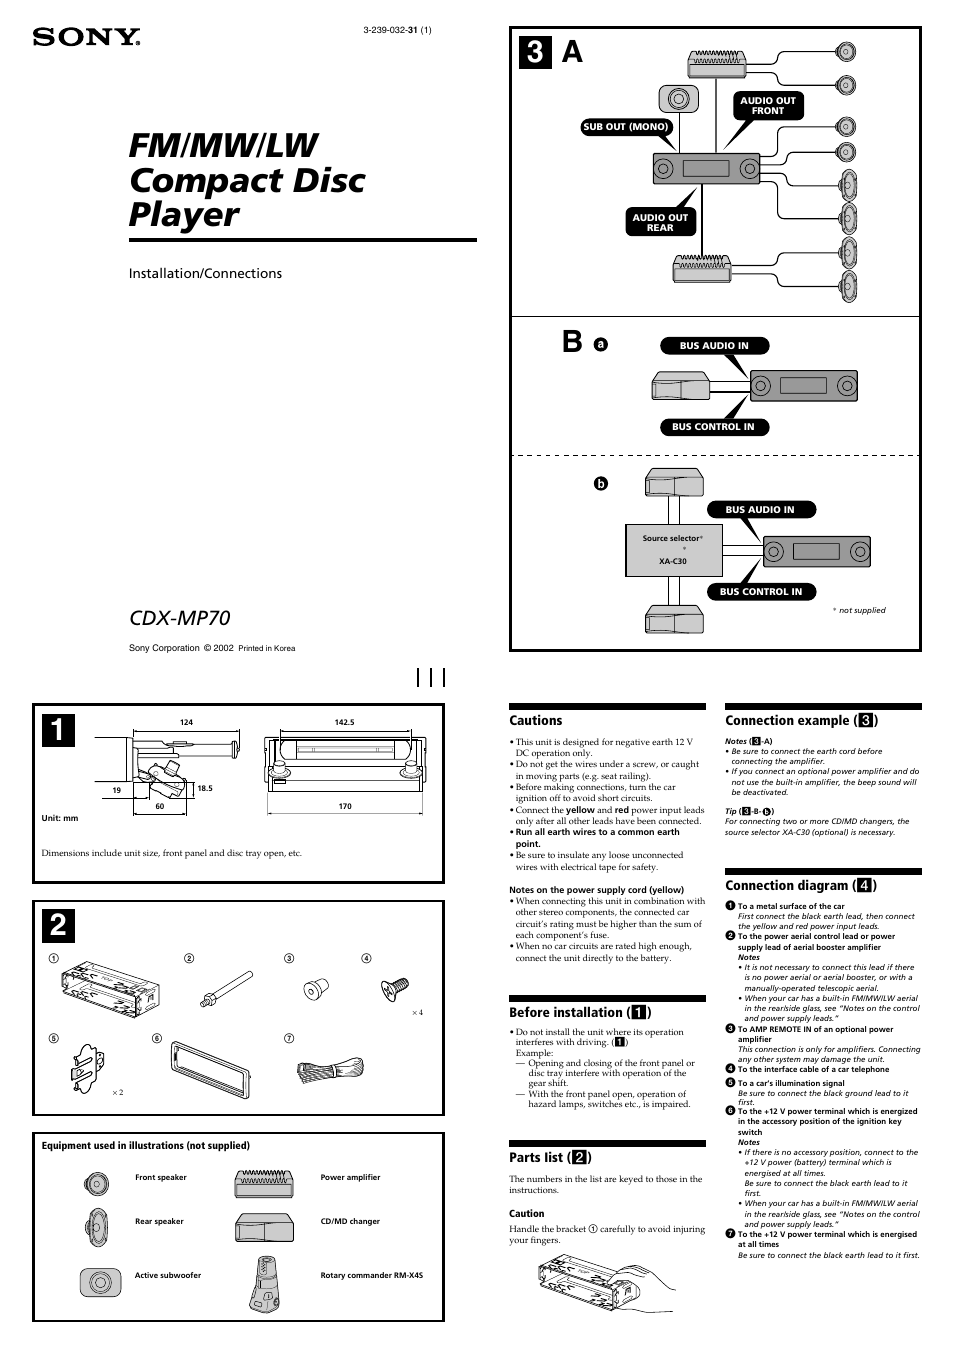 Sony CDX-MP70 User Manual | 4 pages on